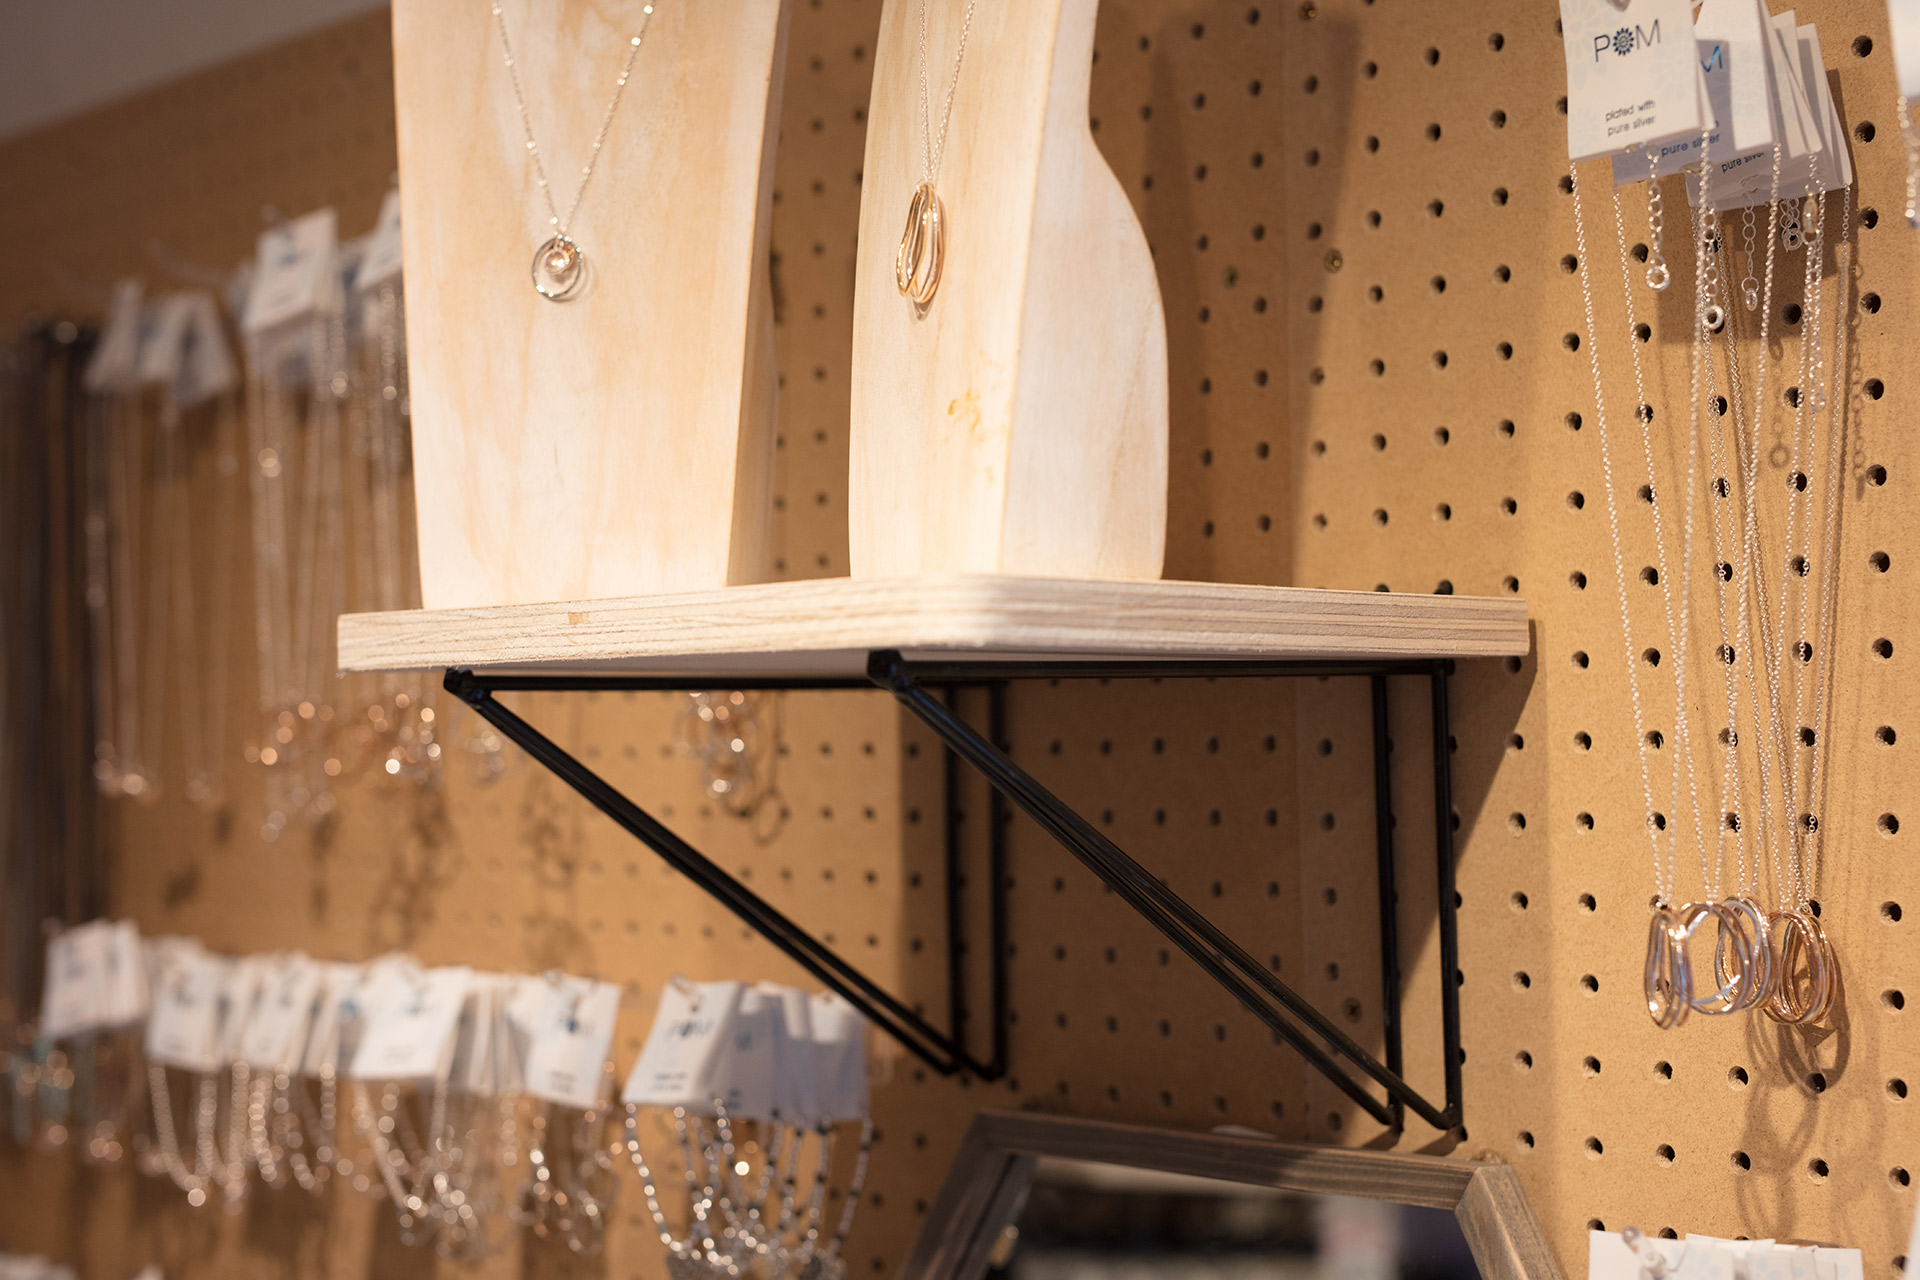 Bespoke wire brackets designed to fix to pegboard and support plywood display shelves